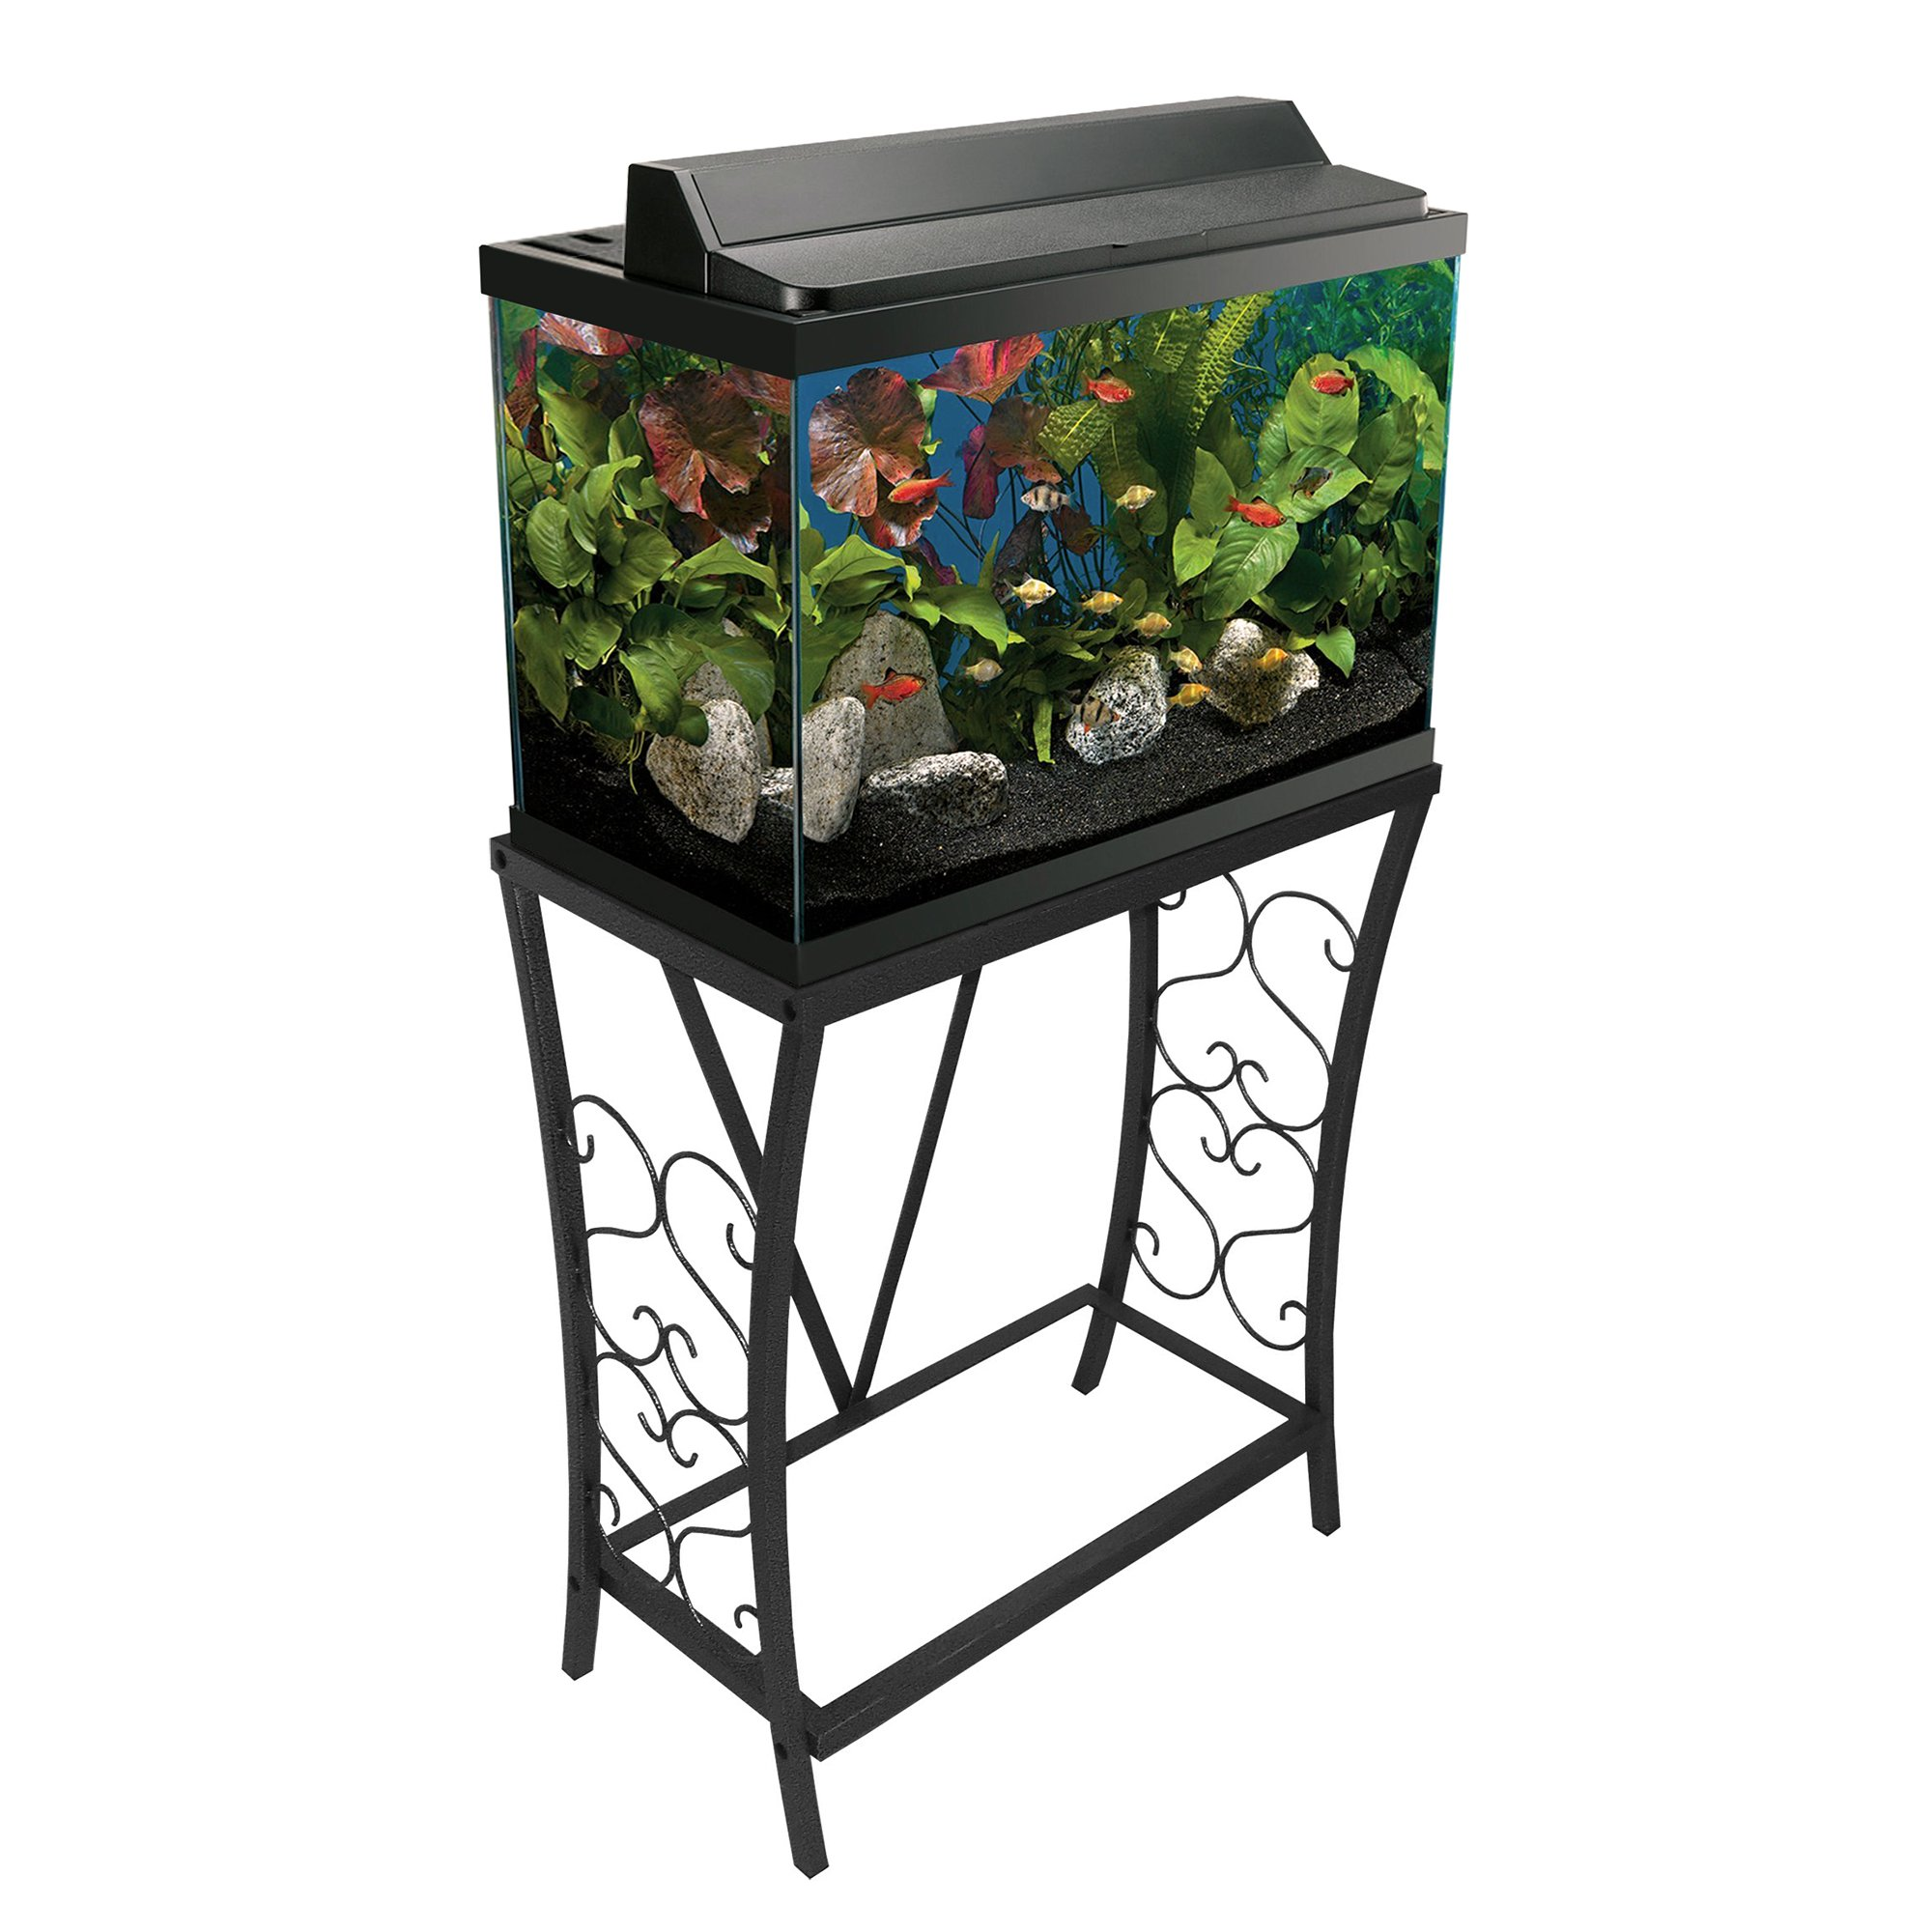 Aquatic Fundamentals Black Scroll Aquarium Stand 20 Gallons  sc 1 st  Petco & Aquarium Stands Canopies u0026 Cabinets | Petco Store